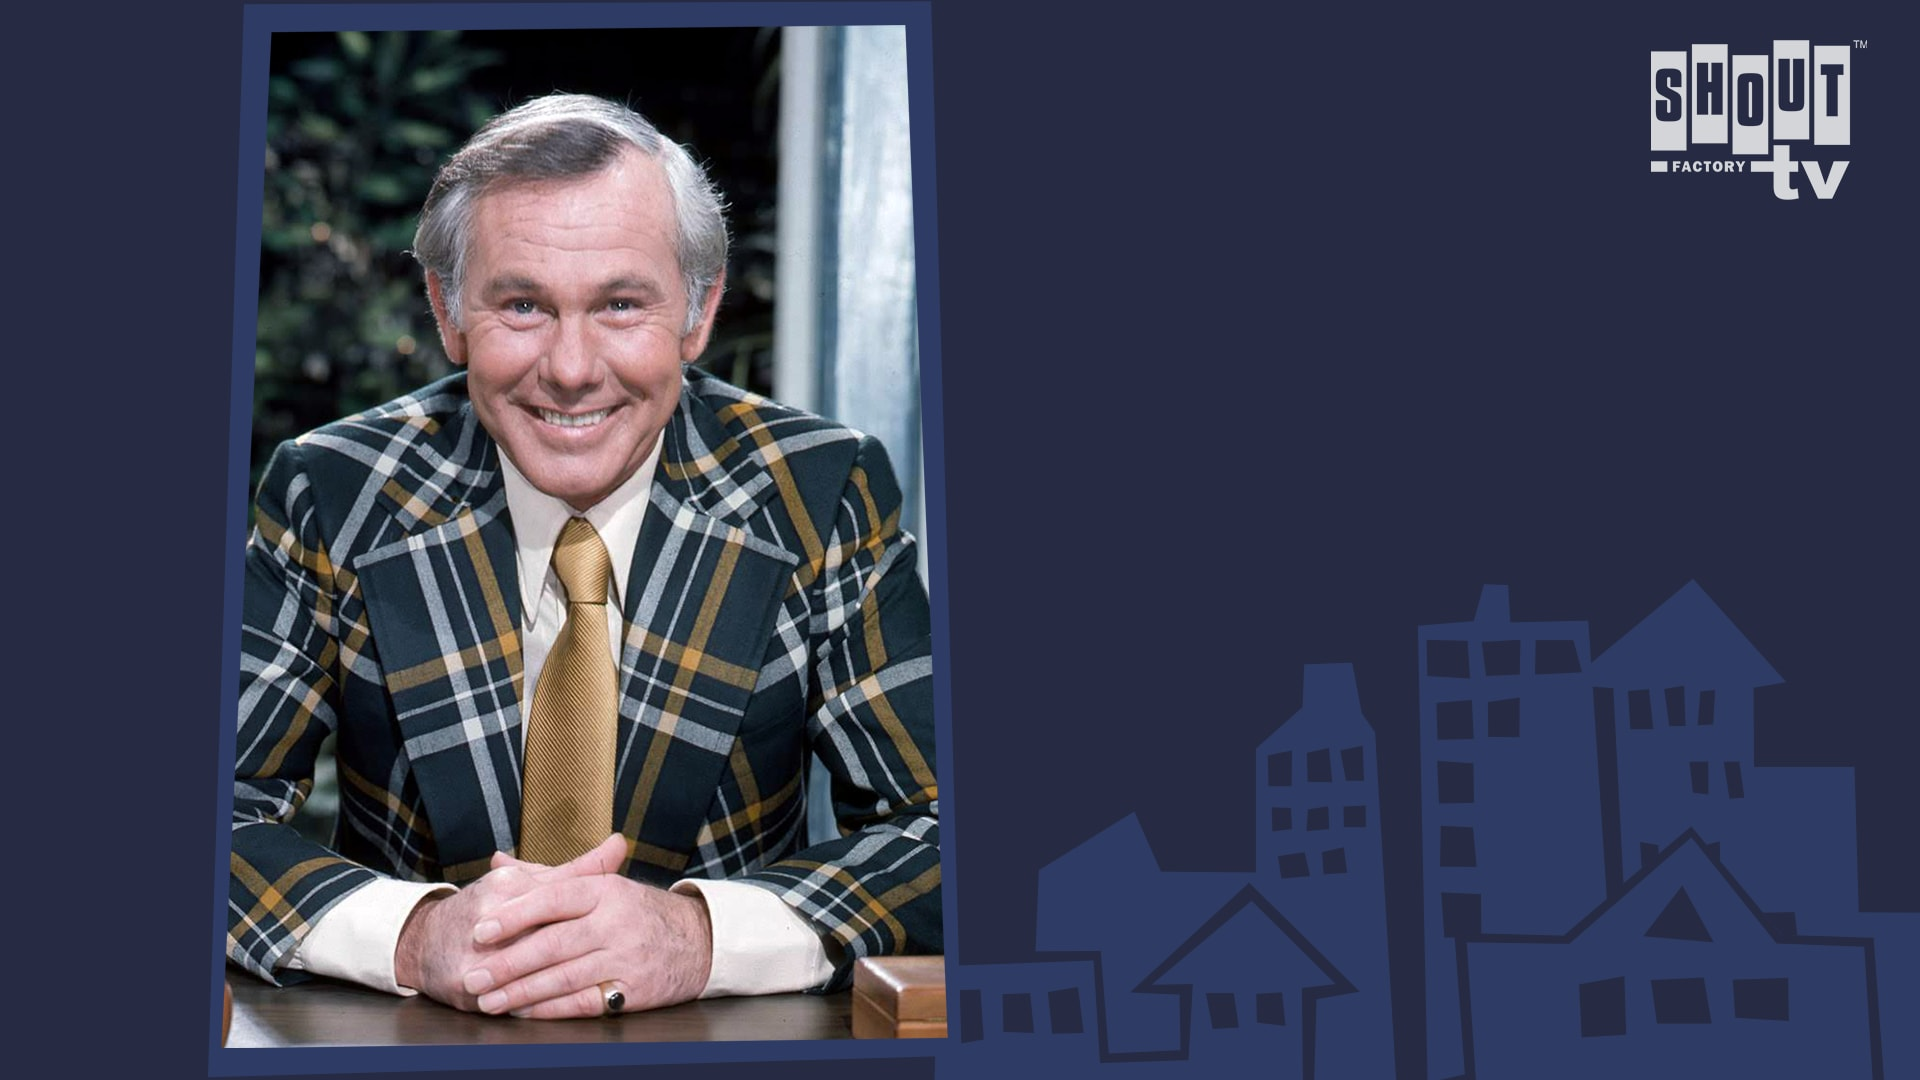 The Johnny Carson Show: Comic Legends Of The '50s - Bob Hope (5/21/74)